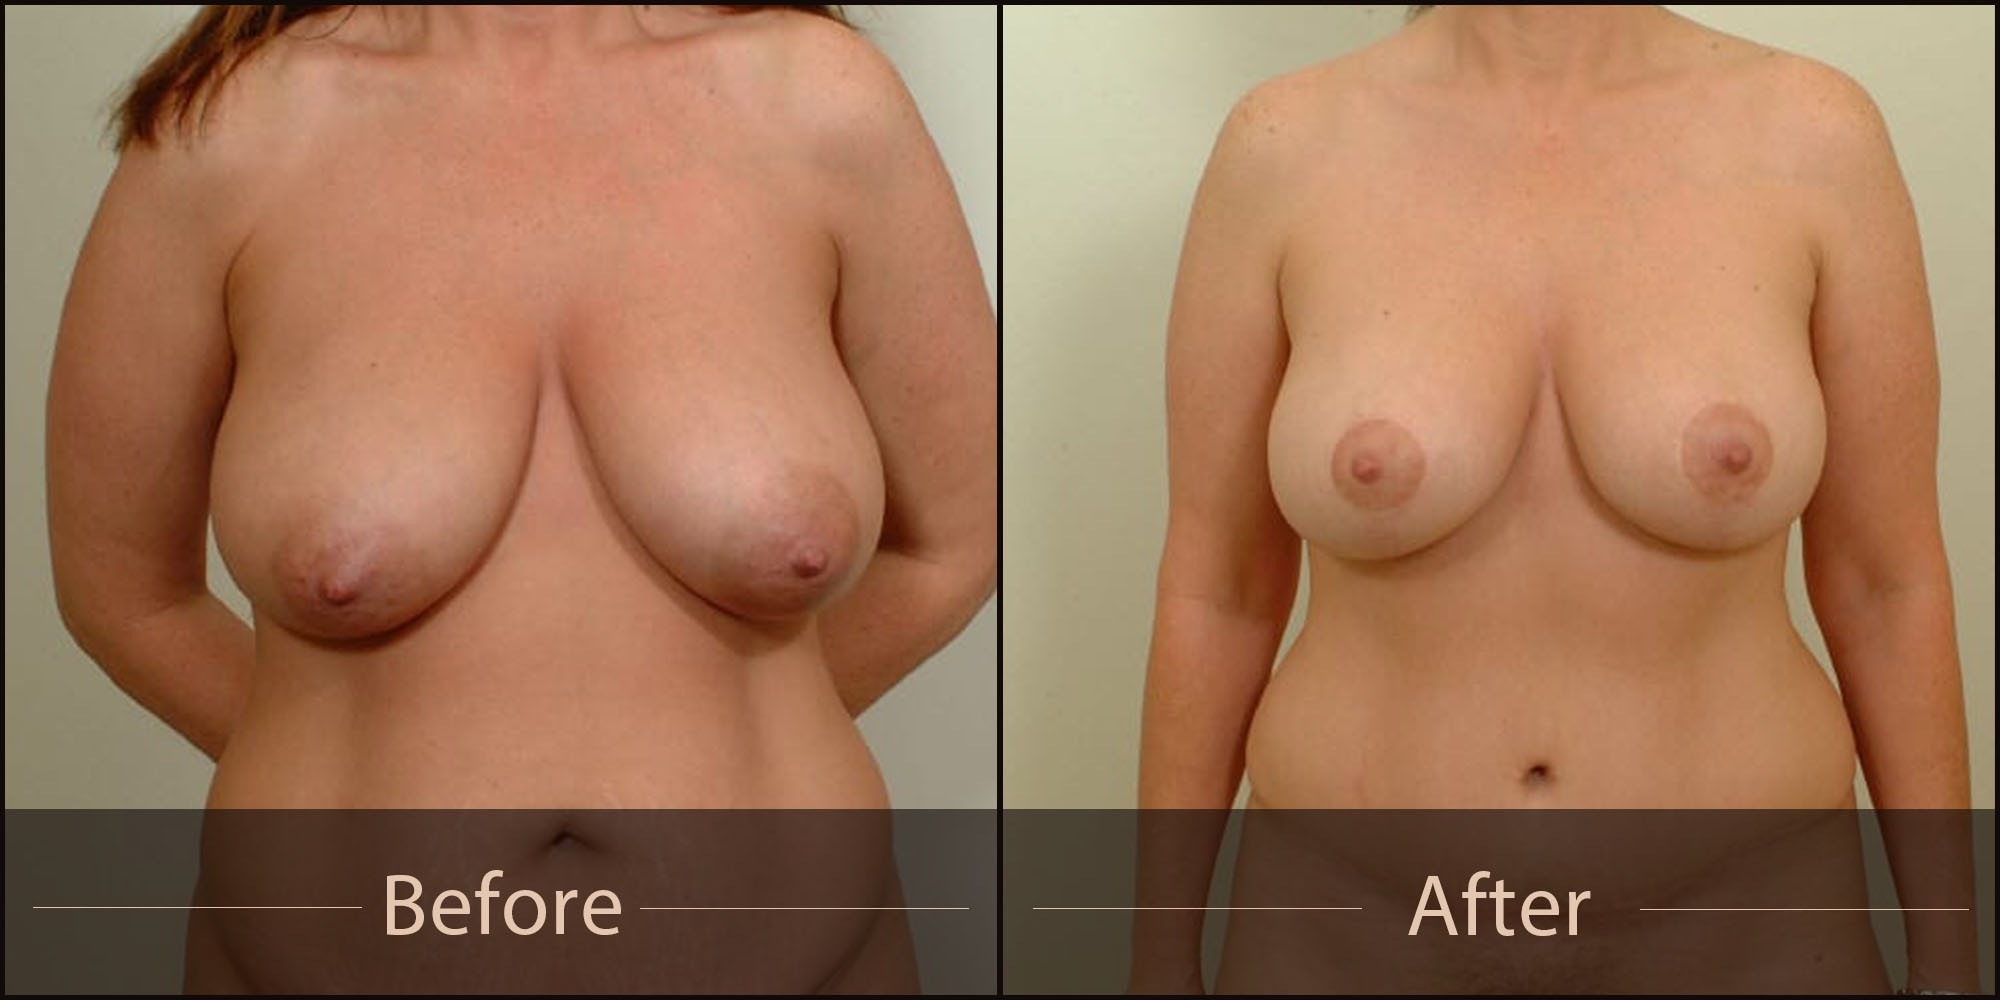 VINCENT N. ZUBOWICZ MD VNZ Plastic Surgery Emory University Hospital & Health Clinic 5 Star Rated Facelift and Breast Aug MOmmy Makeover